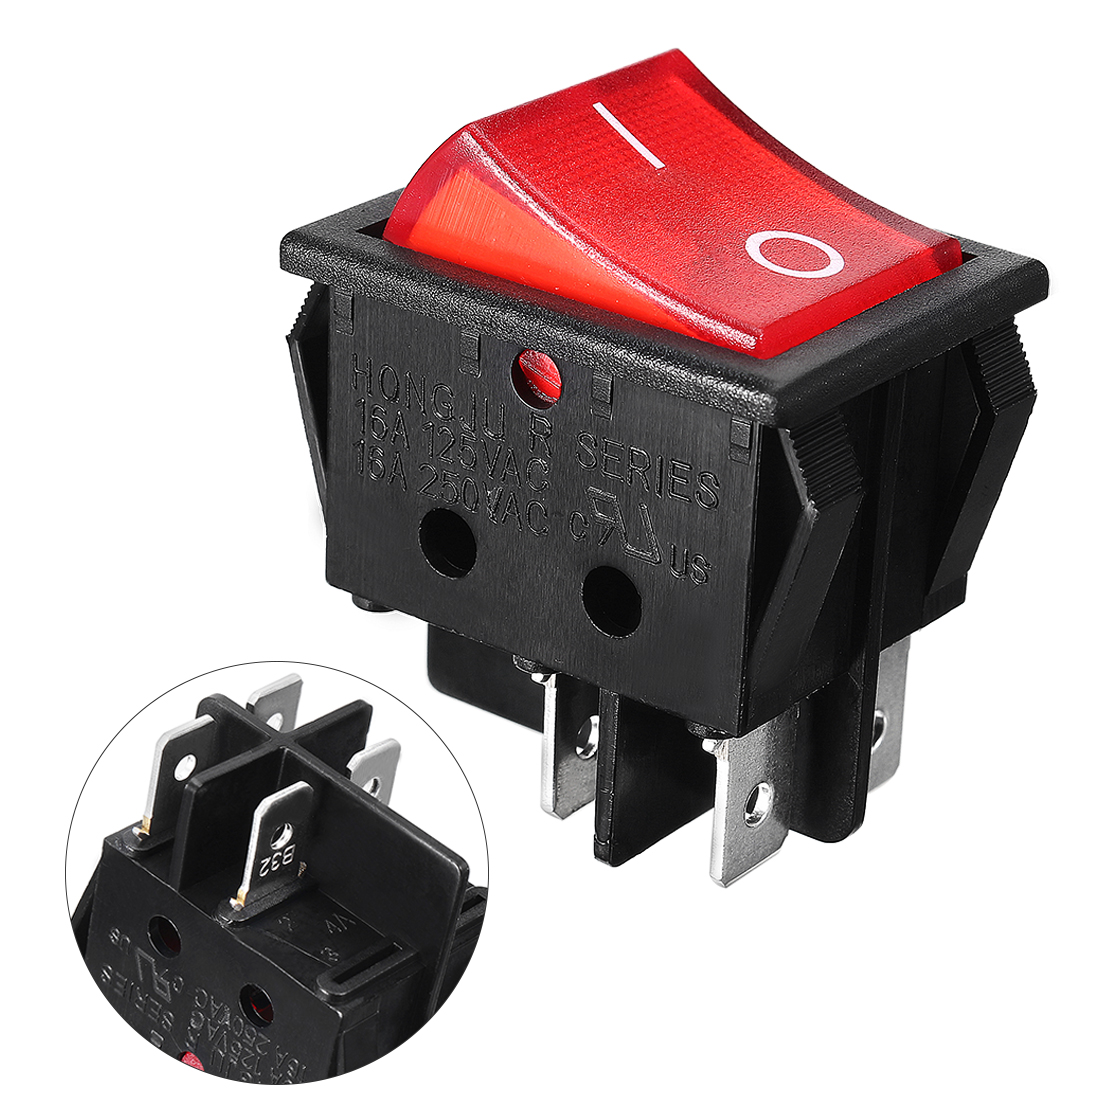 AC 250V 15A Red Light Illuminated 4 Pin DPST ON/OFF Snap in Boat Rocker Switch